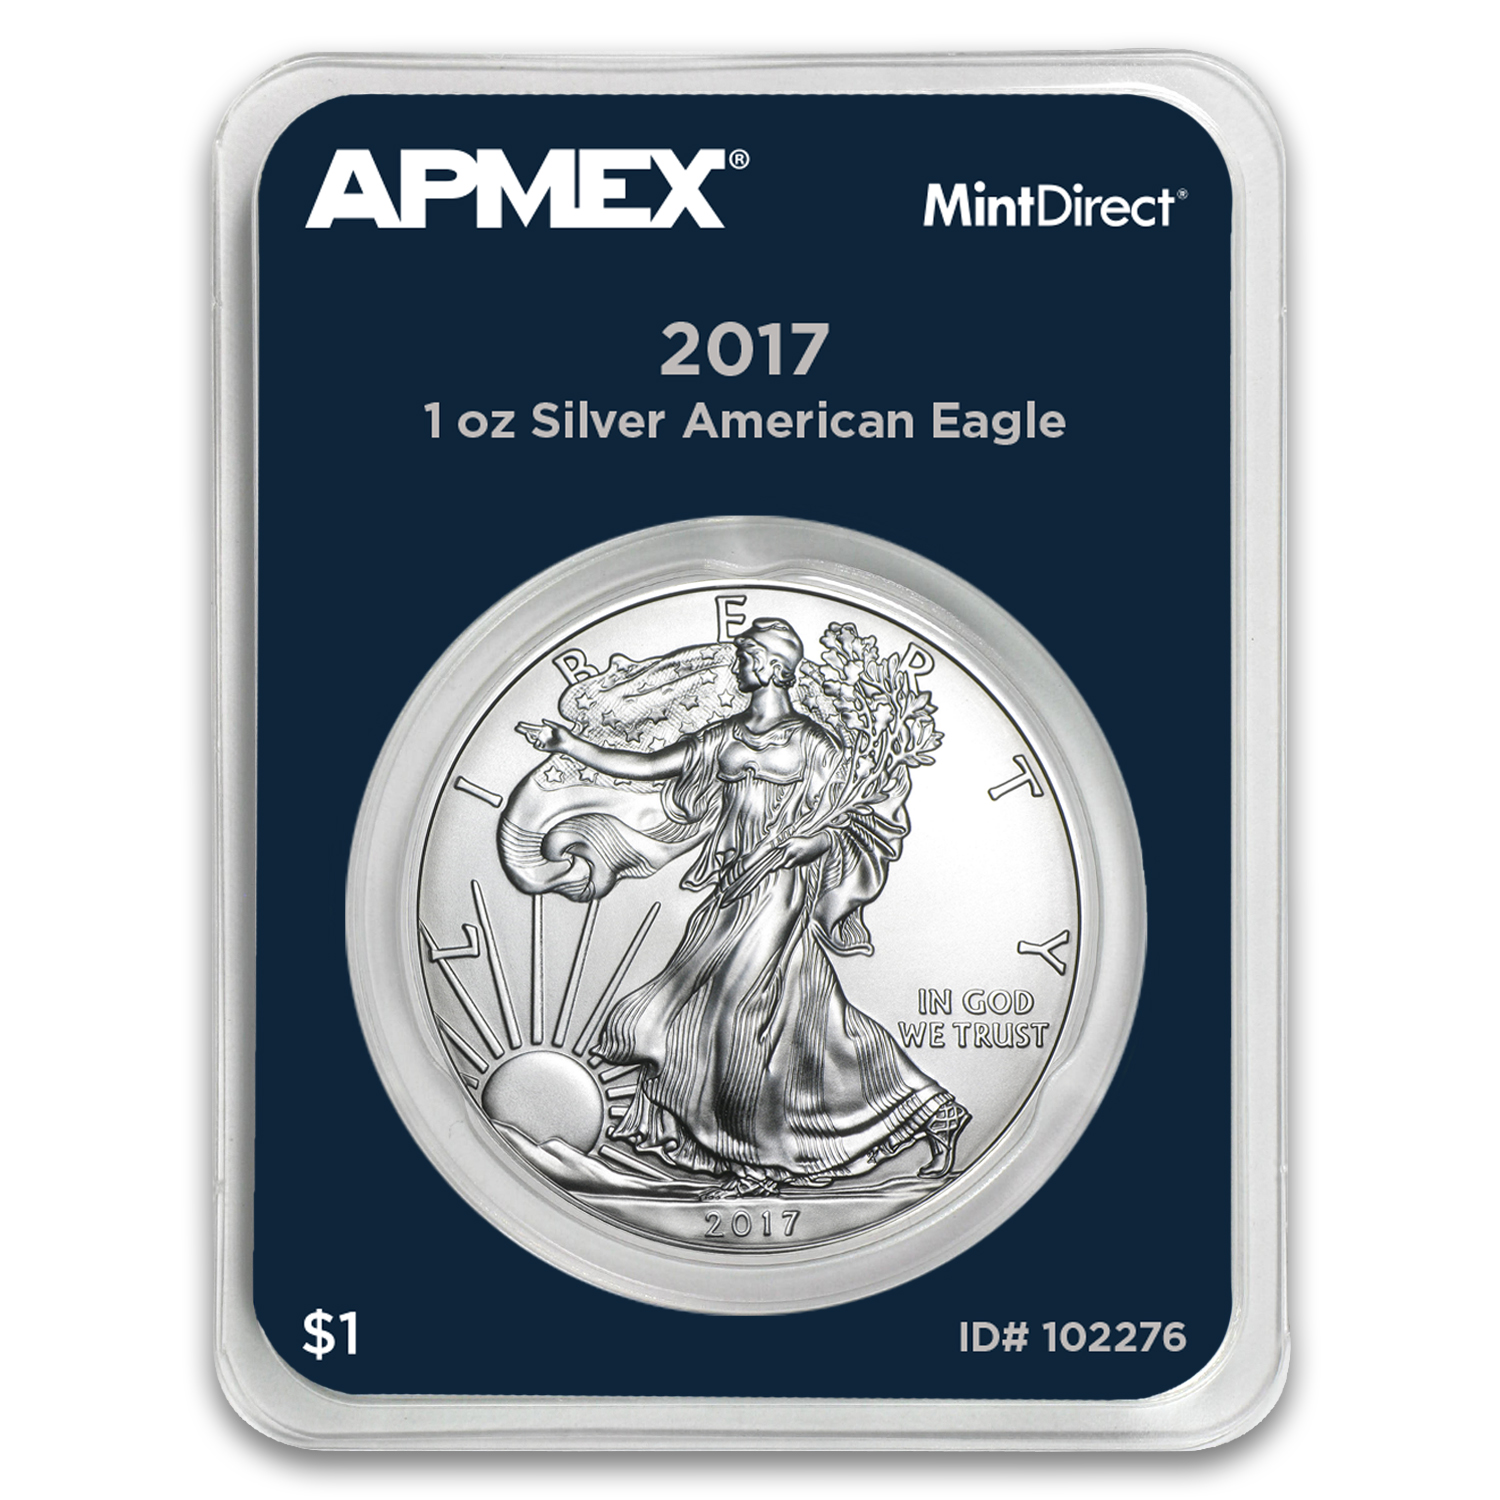 2017 1 oz Silver American Eagle (MintDirect® Single)